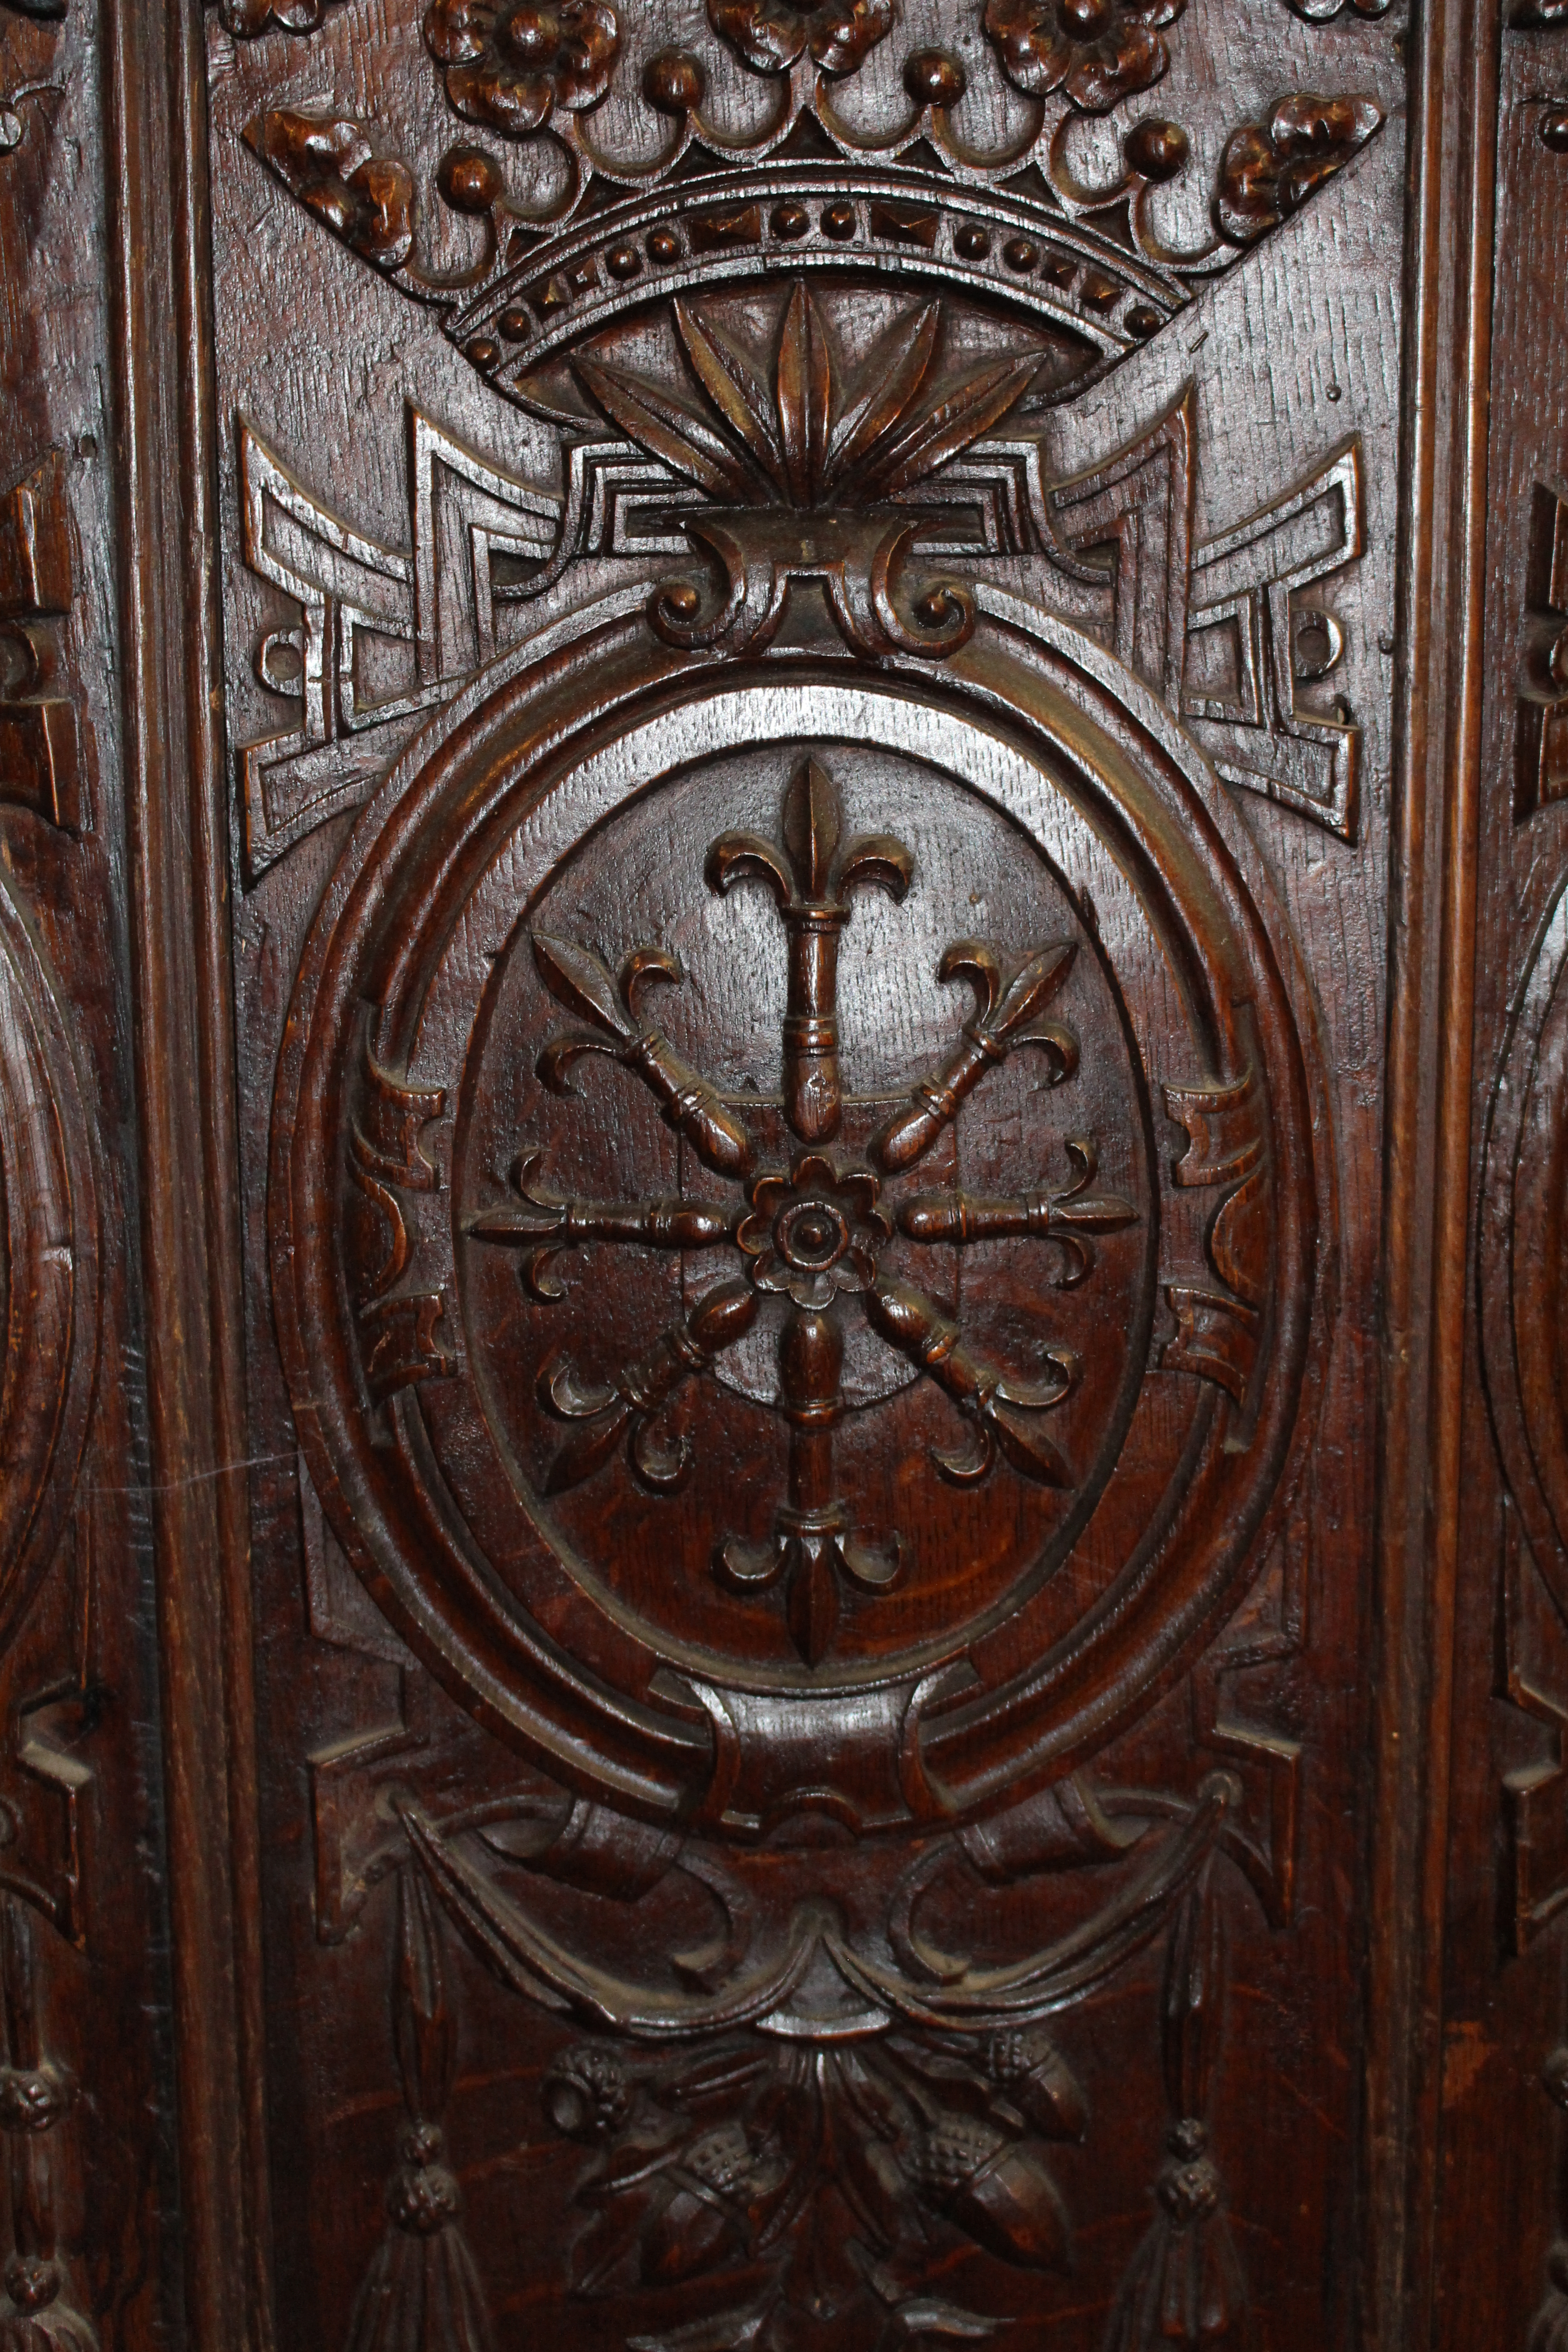 The emblem of Cleves